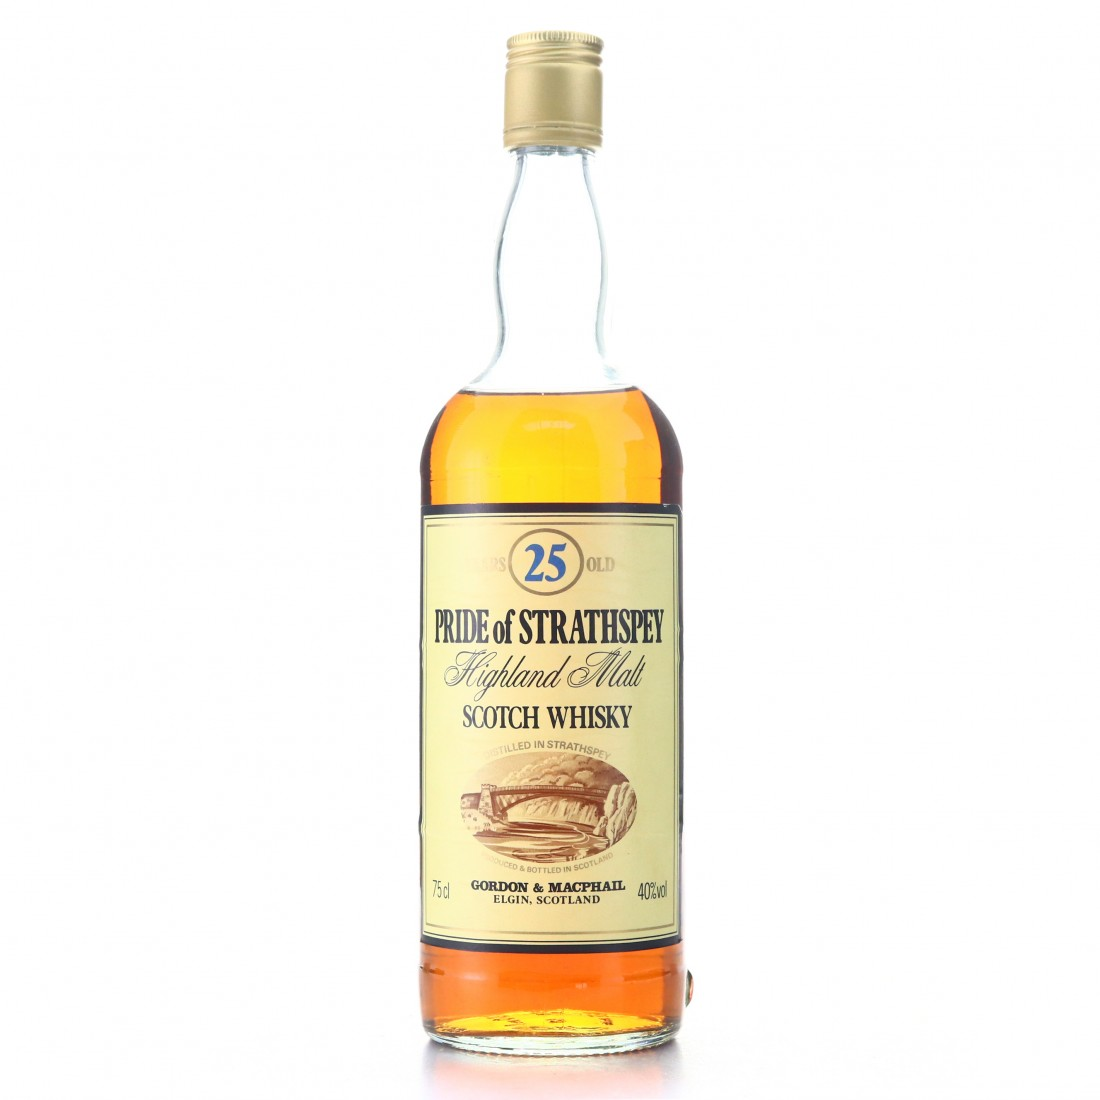 Pride of Strathspey 25 Year Old Highland Malt 1980s